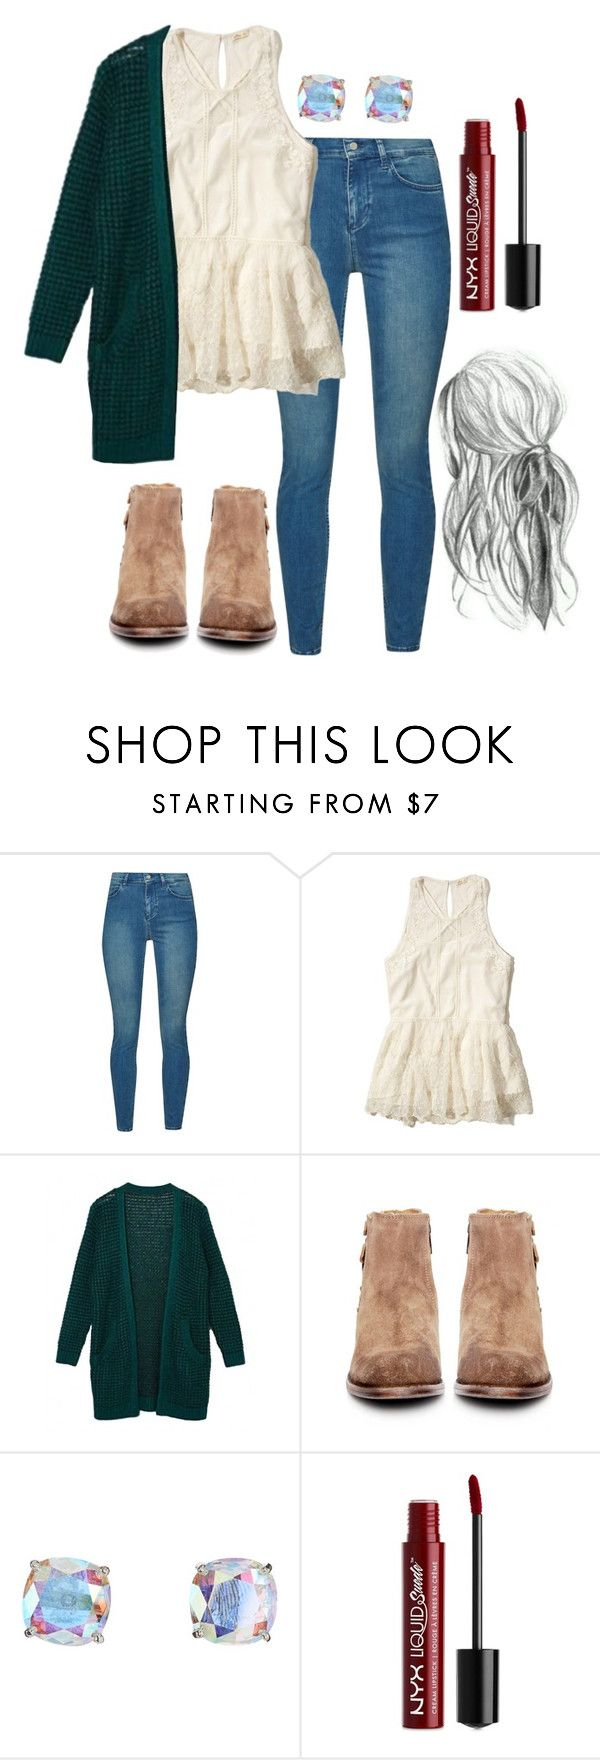 """""""lydia martin inspired outfit"""" by natashayoung ❤ liked on Polyvore featuring French Connection, Hollister Co., H by Hudson, Kate Spade and NYX"""